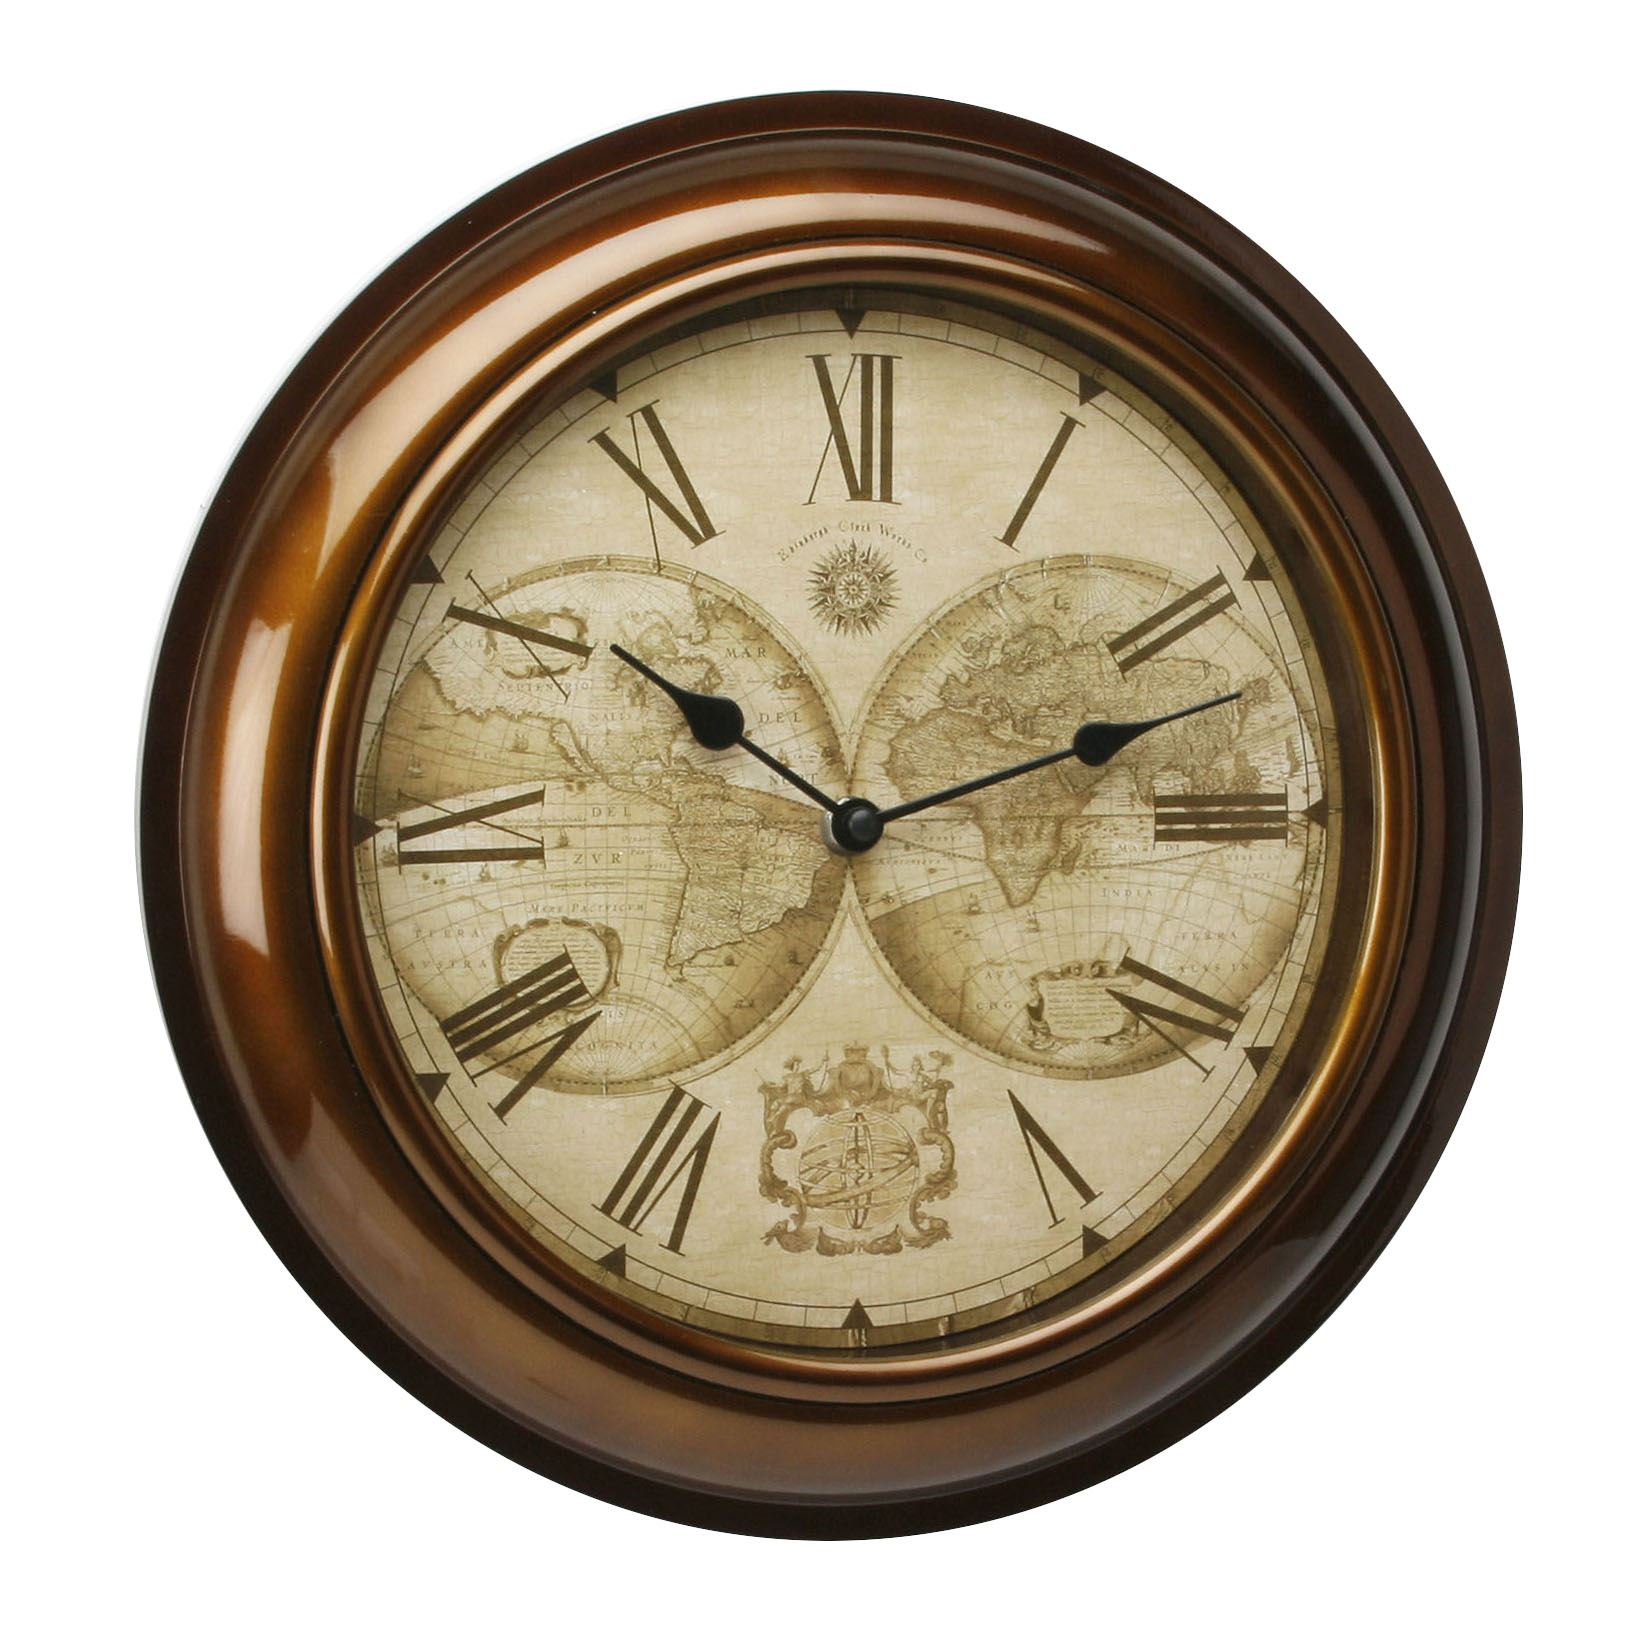 Hometime wall clock gold case world map dial 30cms ebay hometime wall clock gold case world map dial 30cms gumiabroncs Images